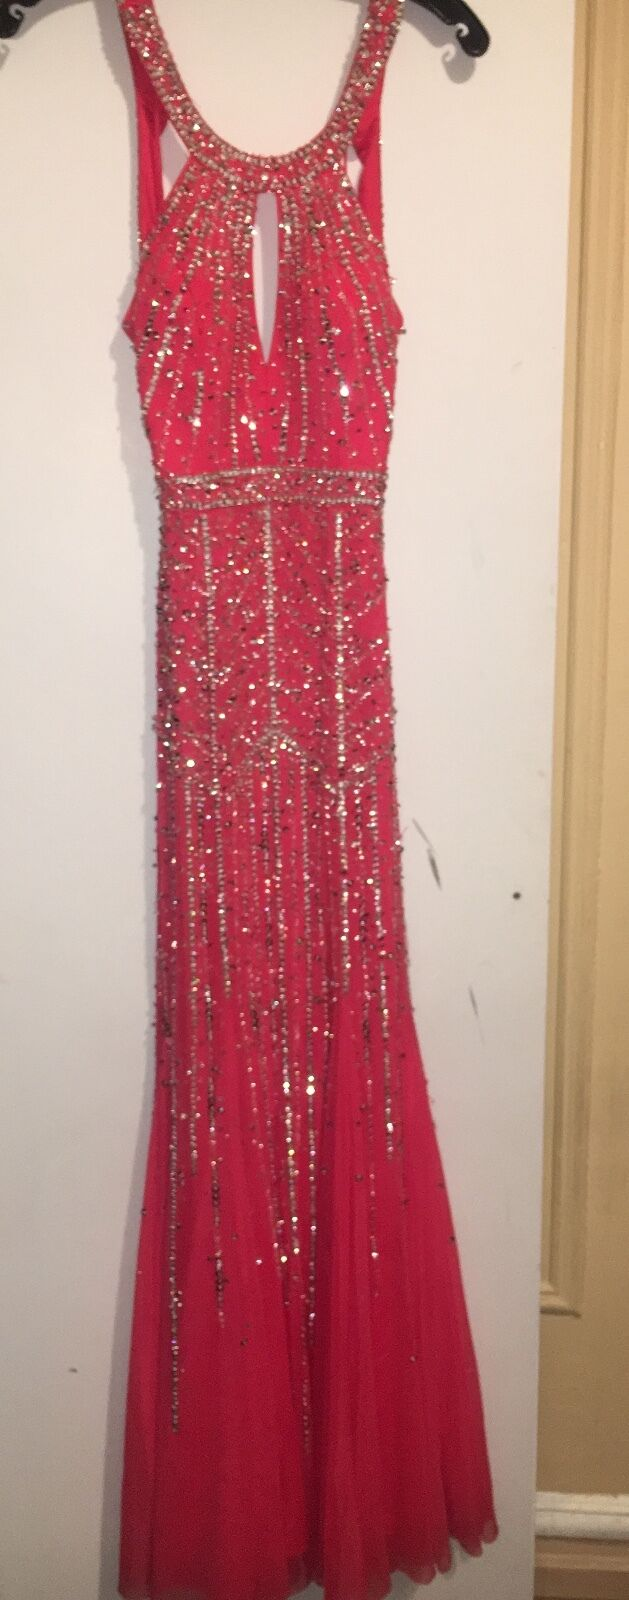 Sean Couture  Coral Pink Pink Pink Dress - Size 2 - Perfect for Summer  1df305